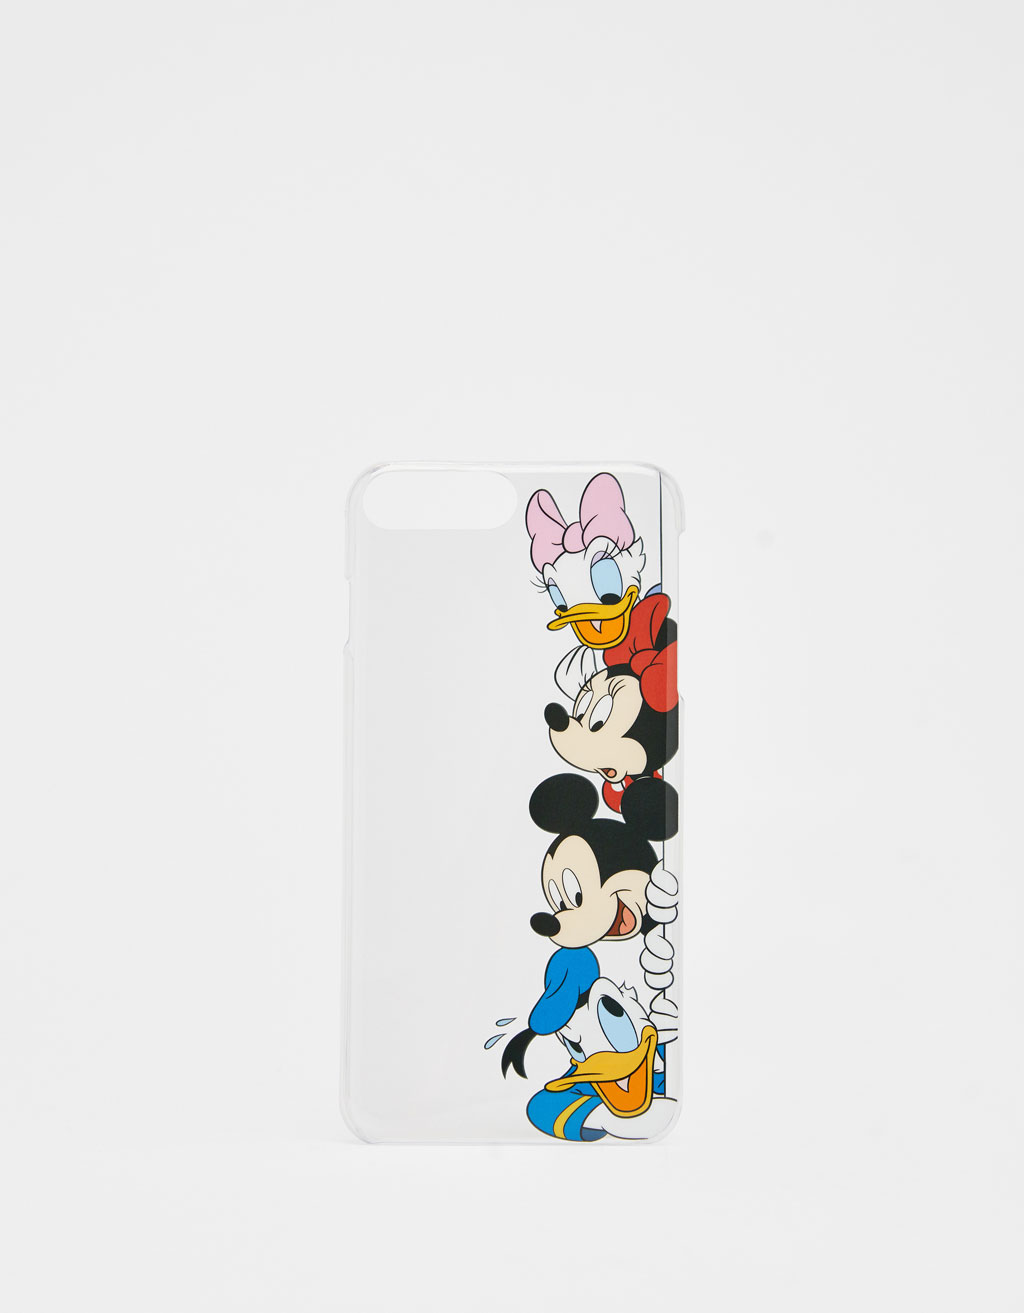 Cover Disney iPhone 6 plus / 7 plus / 8 plus